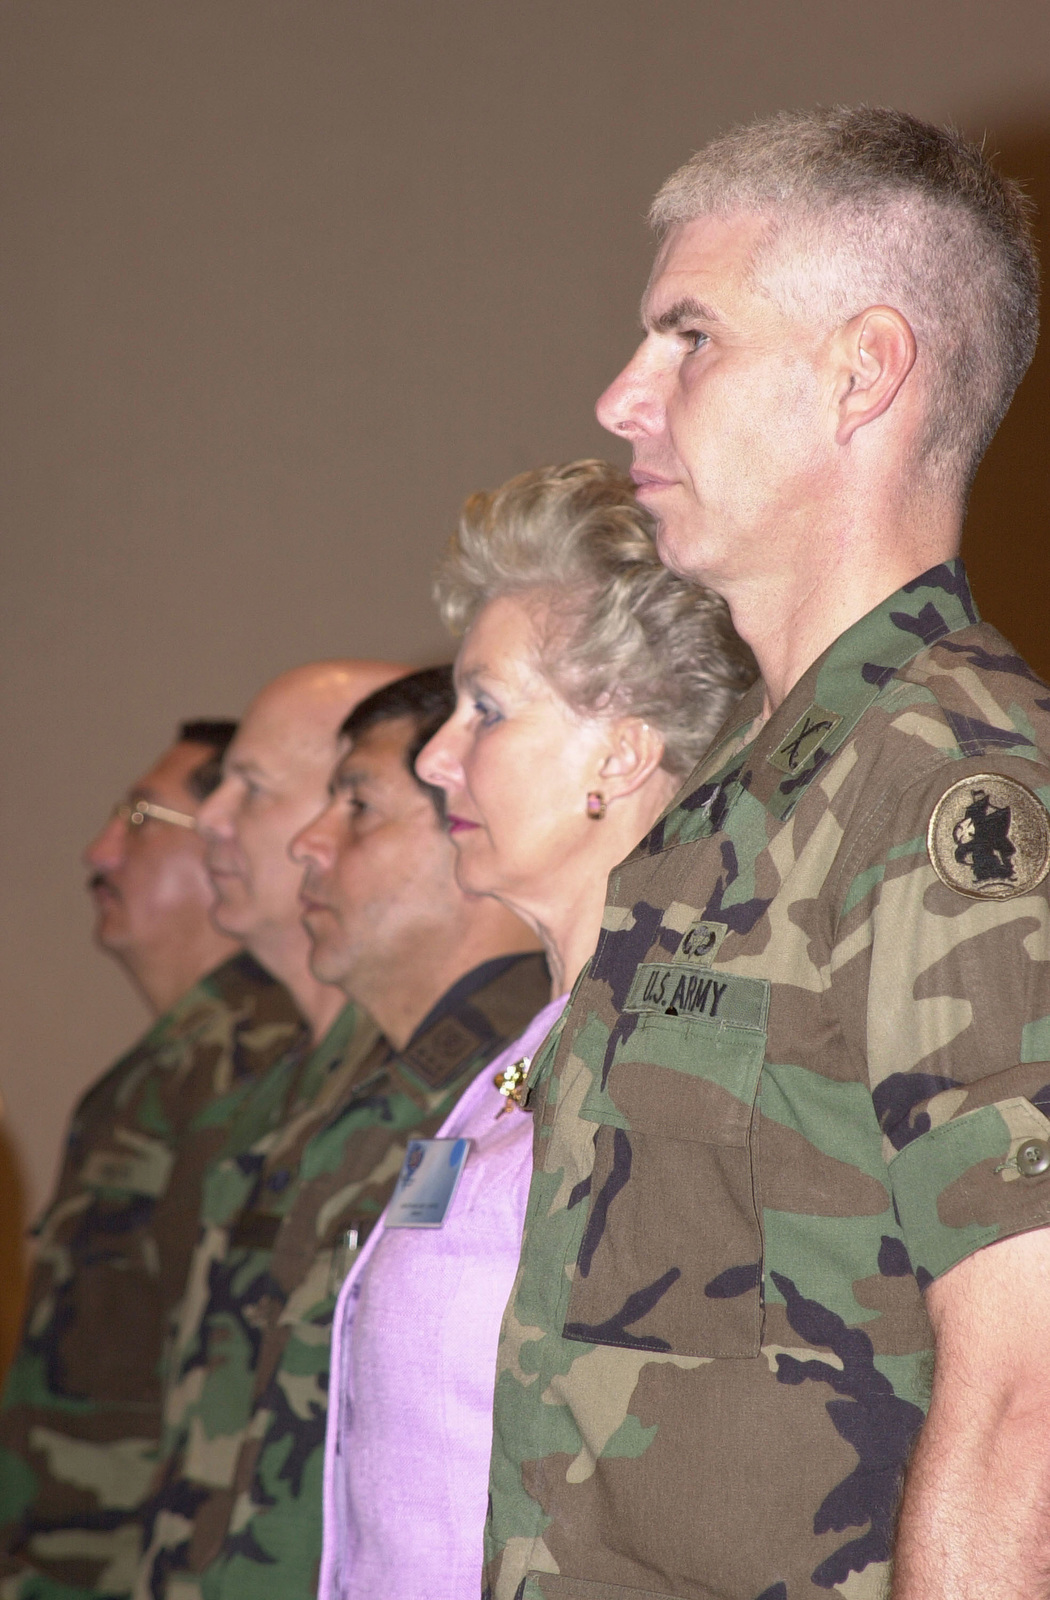 Members of the head table stand during the opening ceremony for United Forces Peacekeeping Operations South-01, left to right are Ecuadorian Army Colonel (COL) Cesar Ubillus, Exercise Co-Director; US Air National Guard Brigadier General (BGEN) Robert W. Sullivan, Director of Operations, Reserve Assistant - SCJ3V, US Southern Command Representative; Ecuador Army Major General (MGEN) Wilson Torres, Exercise Director; Dame Margaret Anstee, Special Representative of the Secretary General of the United Nations; and COL Jeffery T. Christiansen, US Army South Exercise Co-Director., Quito, Ecuador. The peacekeeping exercise is a series of multi-national interactive seminars